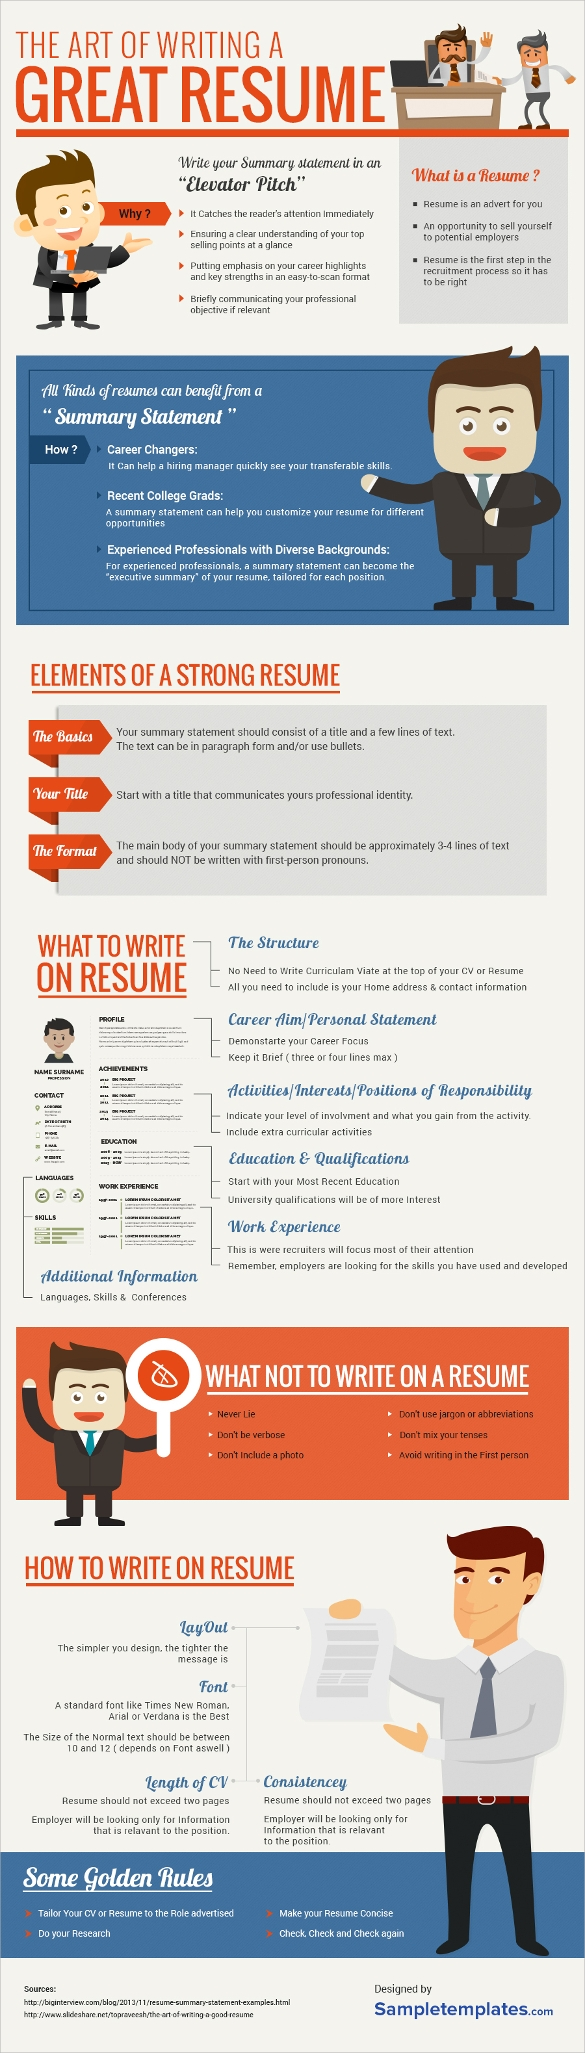 10 tips on how to craft a perfect resume featured photo credit sampletemplates via images sampletemplates com